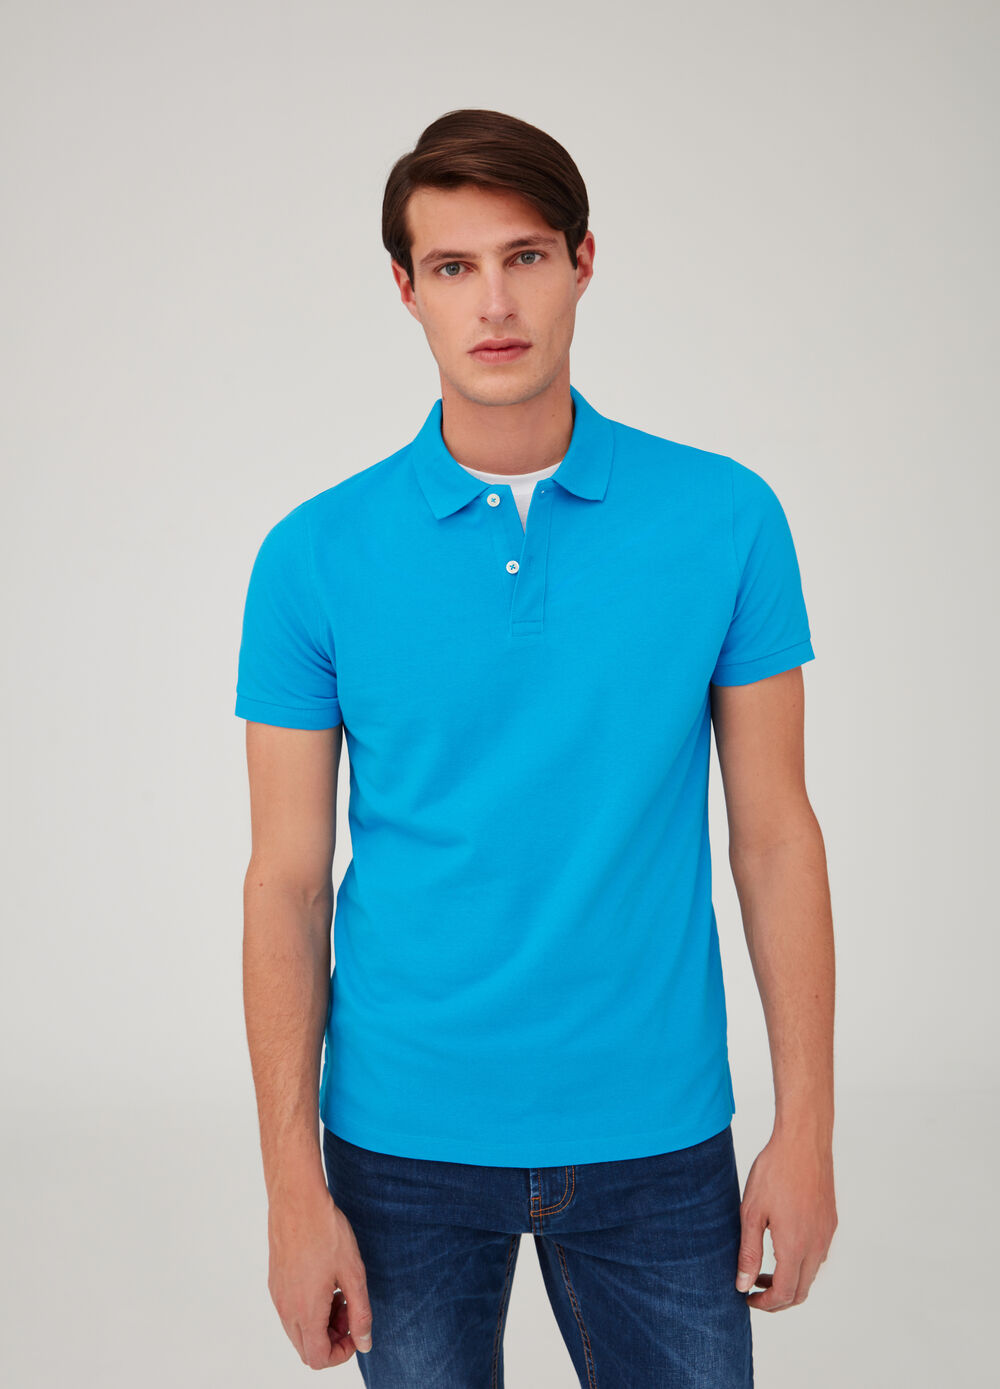 Soft cotton polo shirt with two buttons